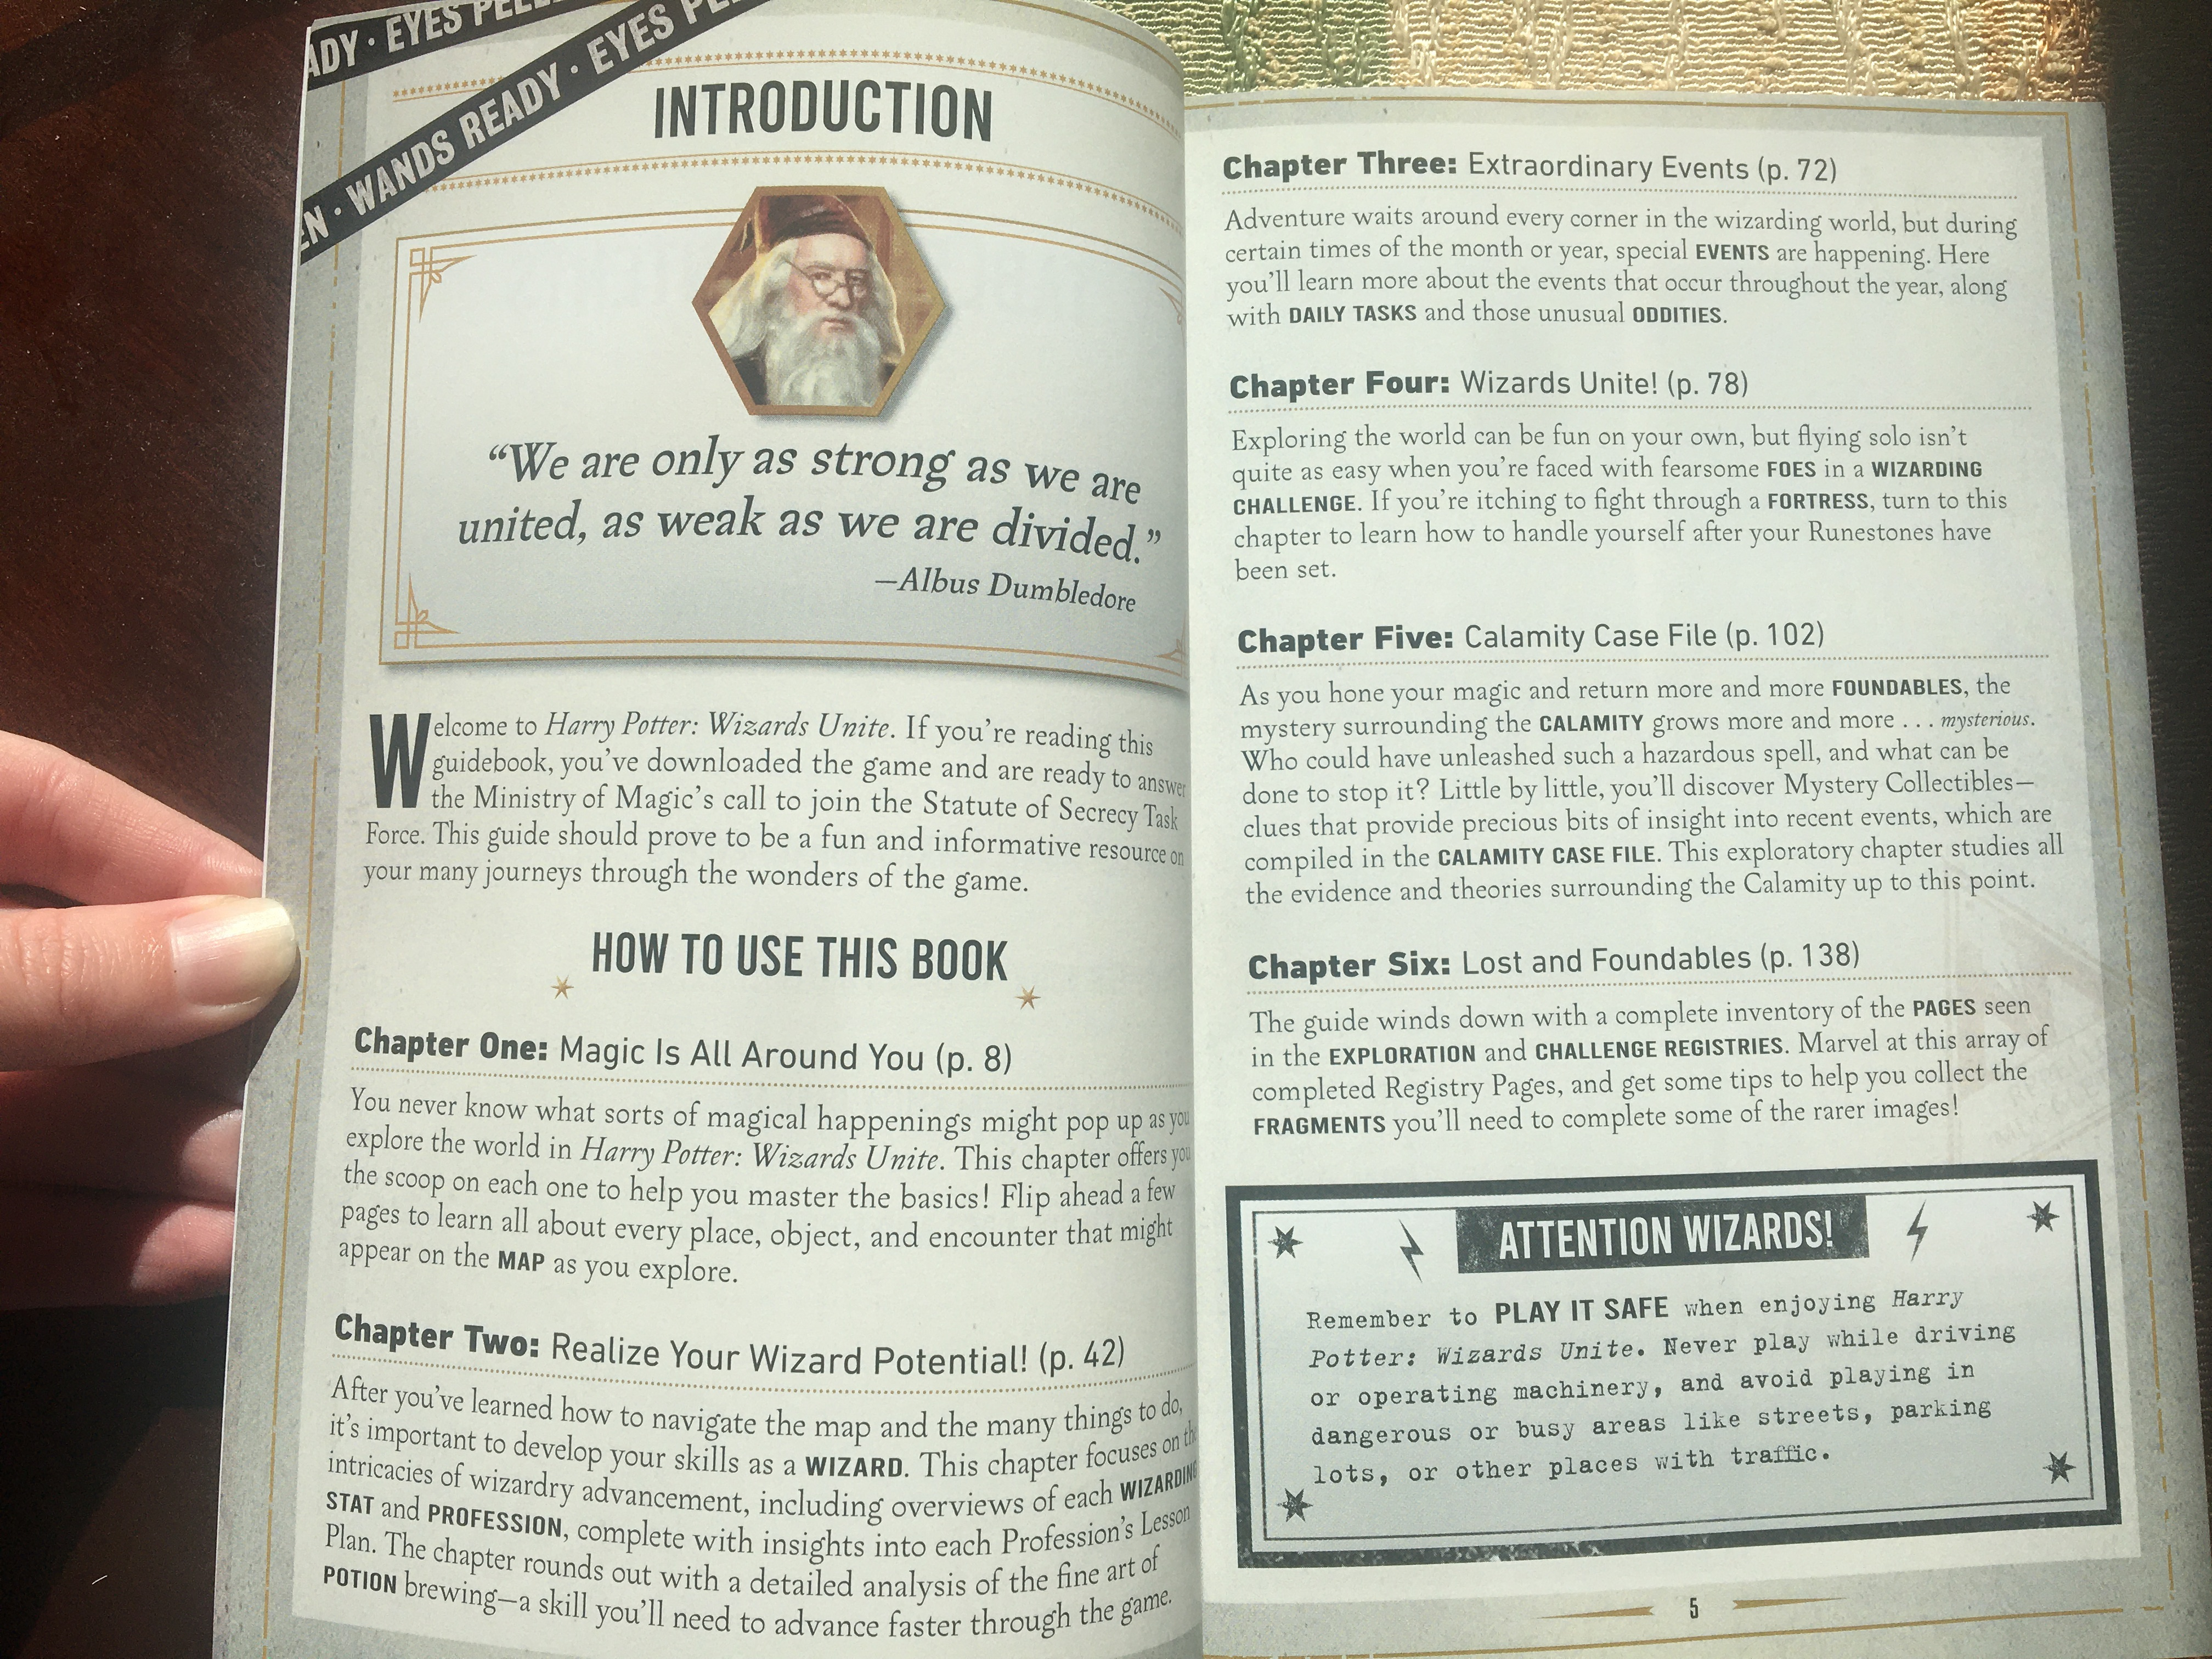 """Harry Potter: Wizards Unite: Official Game Guide"", introduction"